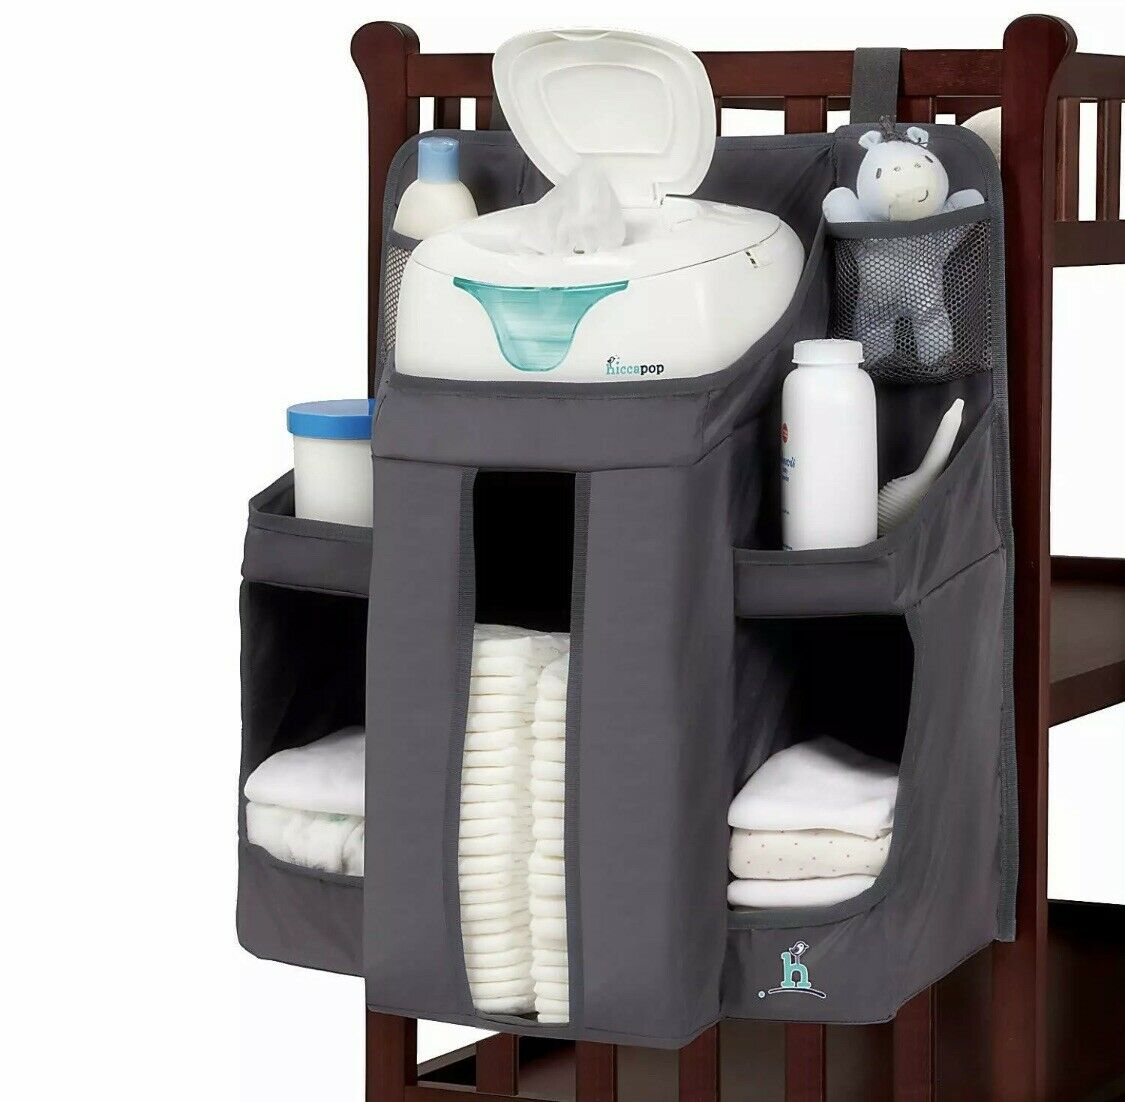 Large Capacity Diaper Nursery Organization for Newborn Boys and Baby Nursery Organizer Hanging Diaper Caddy Stacker for Changing Table Crib Playard and Wall